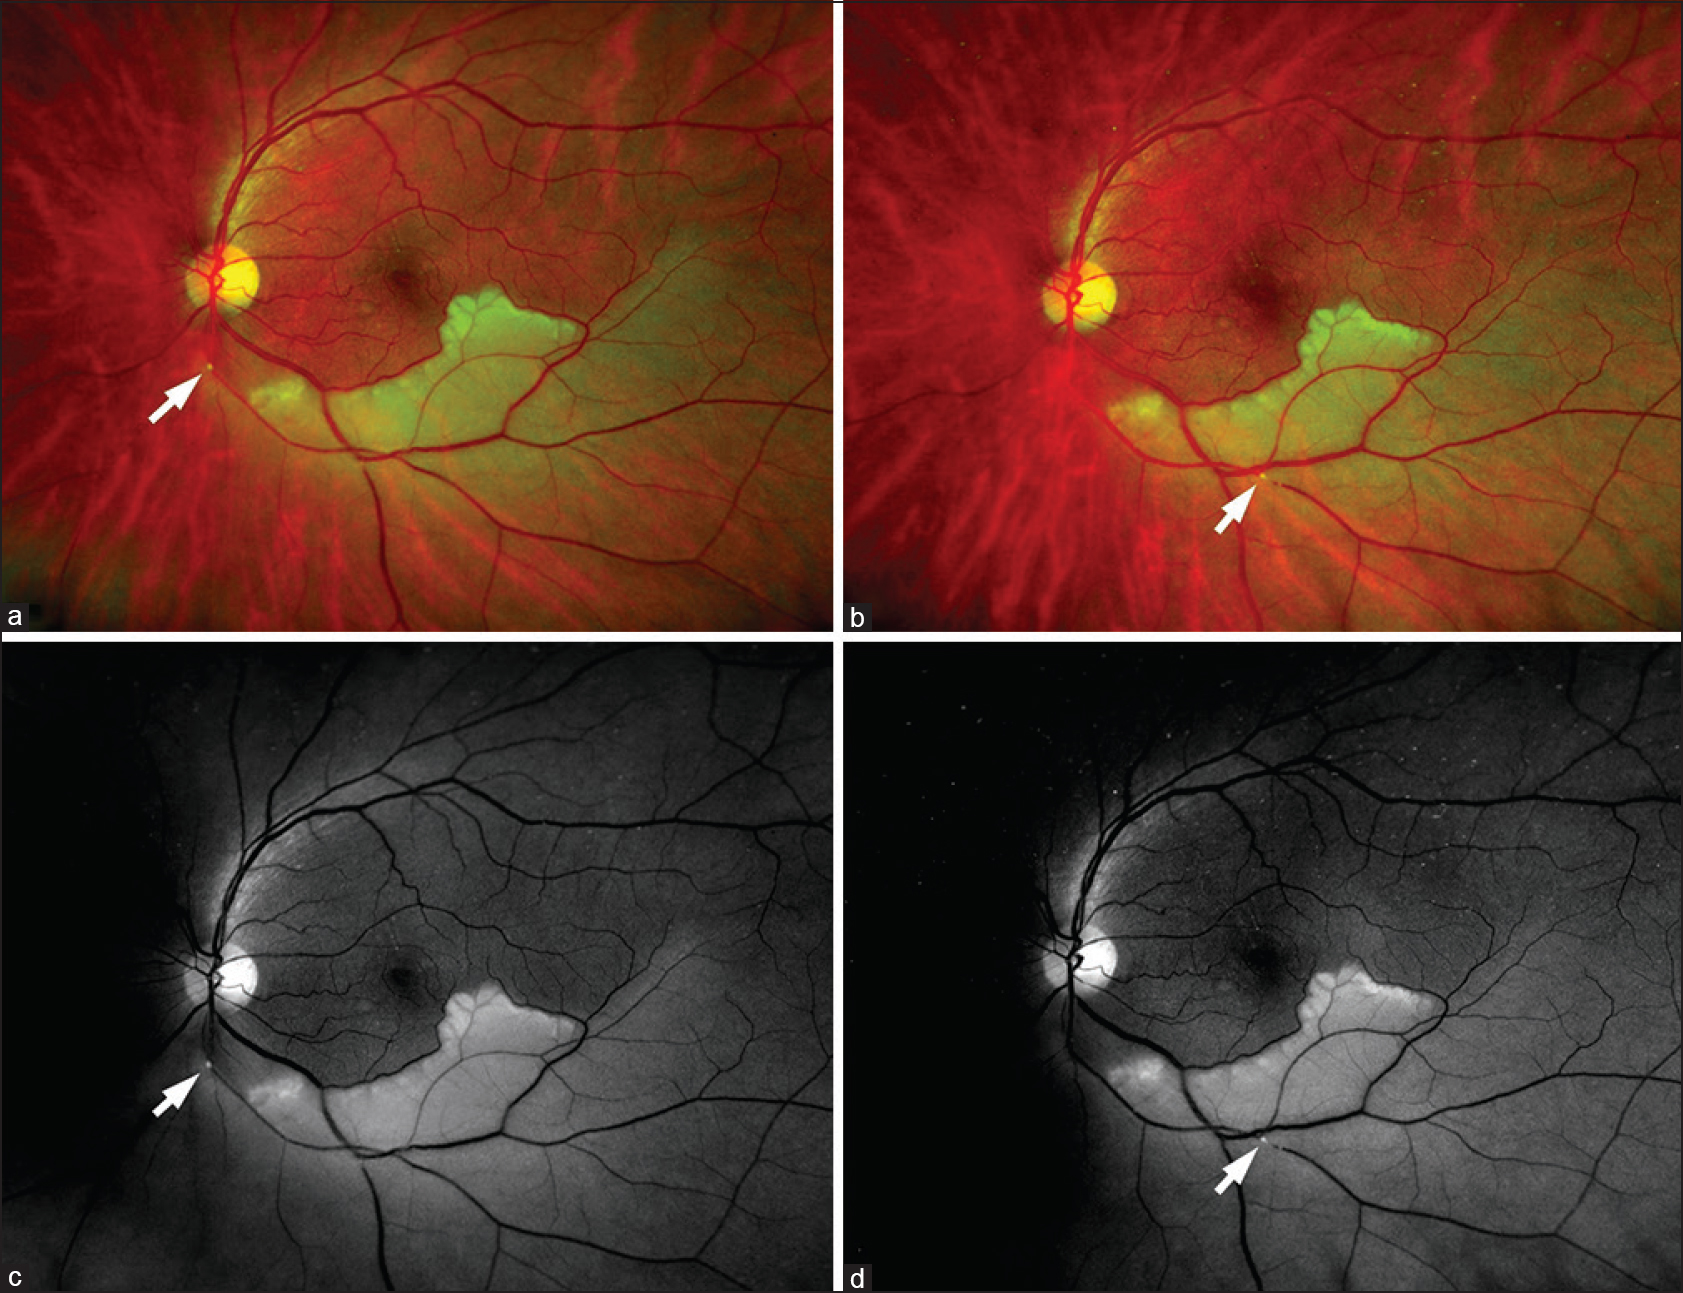 Figure 1: Ultra-wide field retinal image of the left eye with inferior branch retinal artery occlusion from an embolus. The embolus movement from a to b arrow and red-free photograph (Panel c and d) greatly accentuates the retinal whitening and embolus